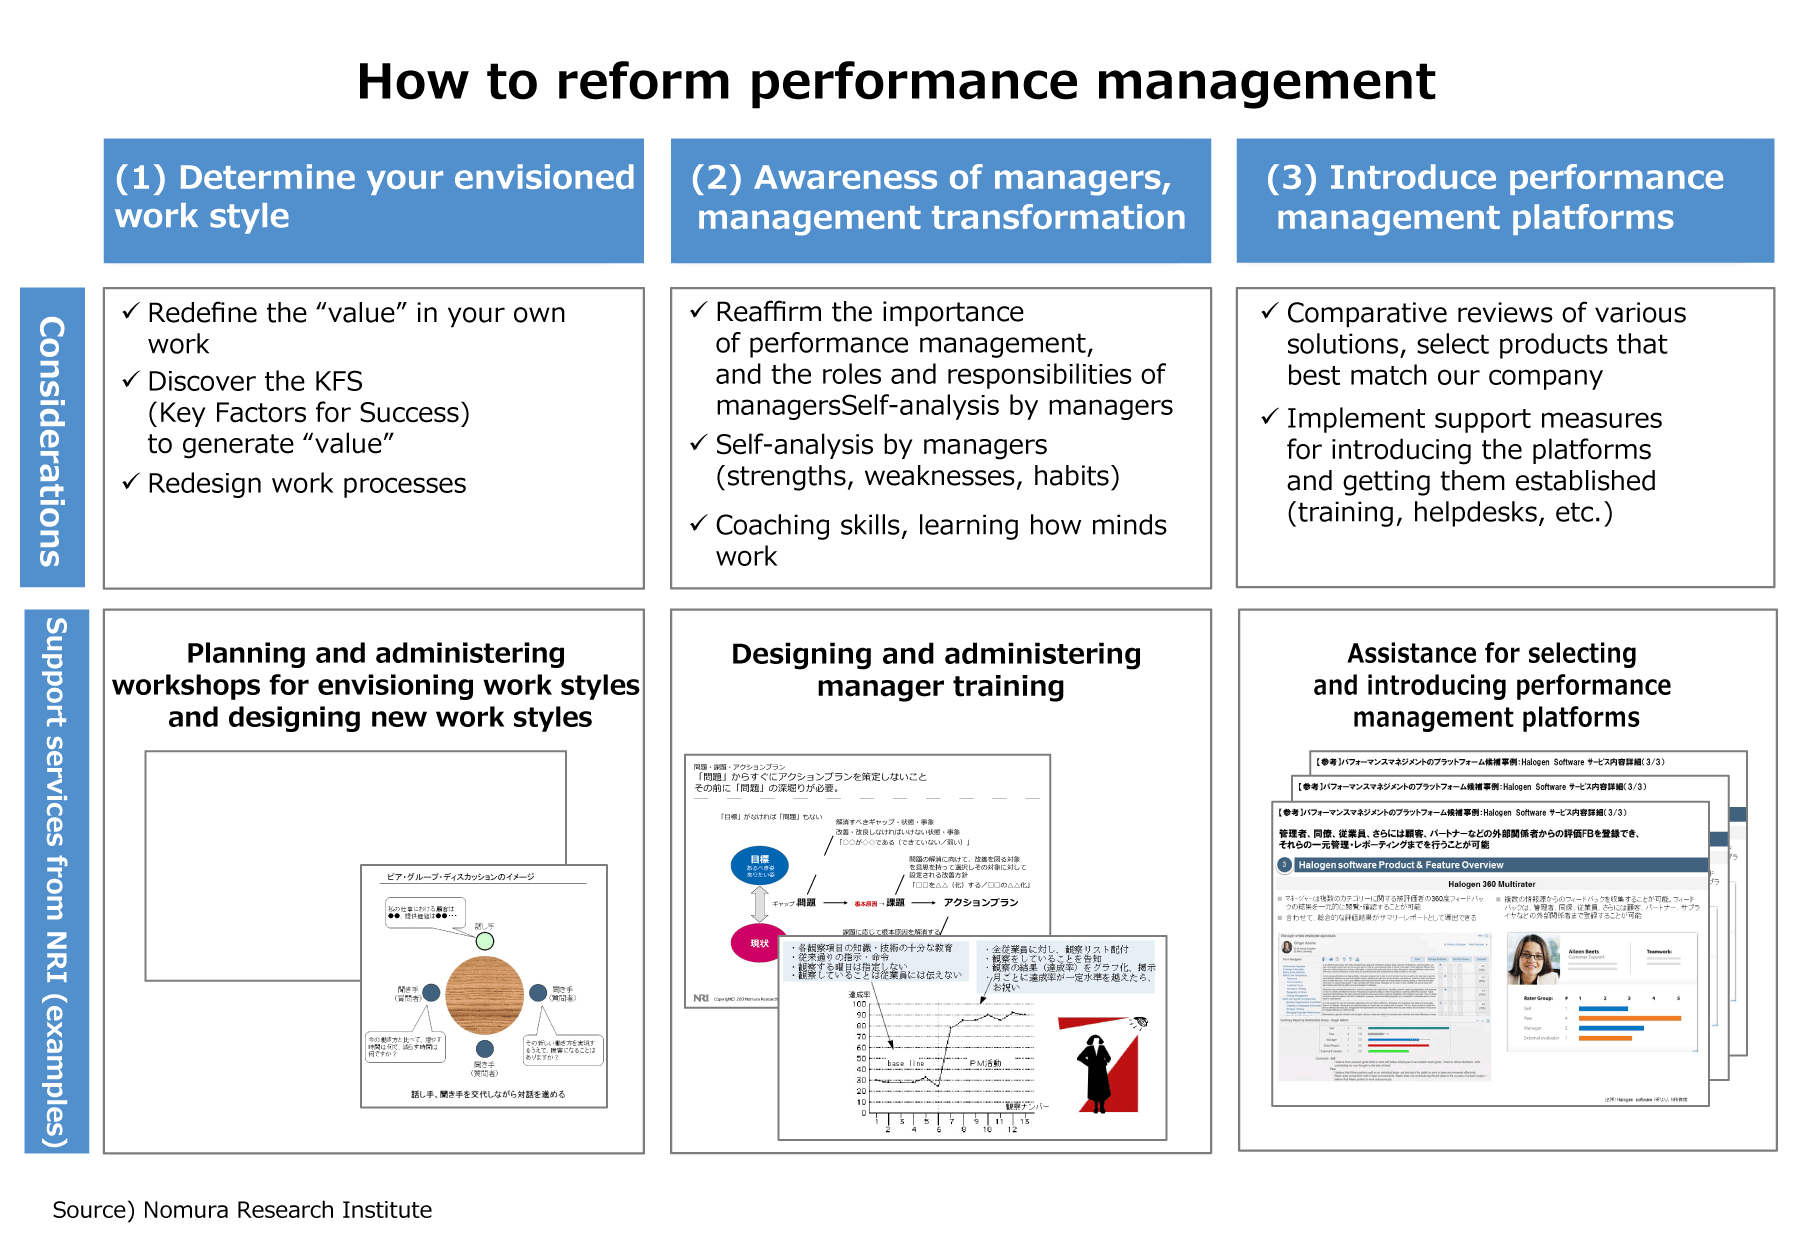 How to reform performance management